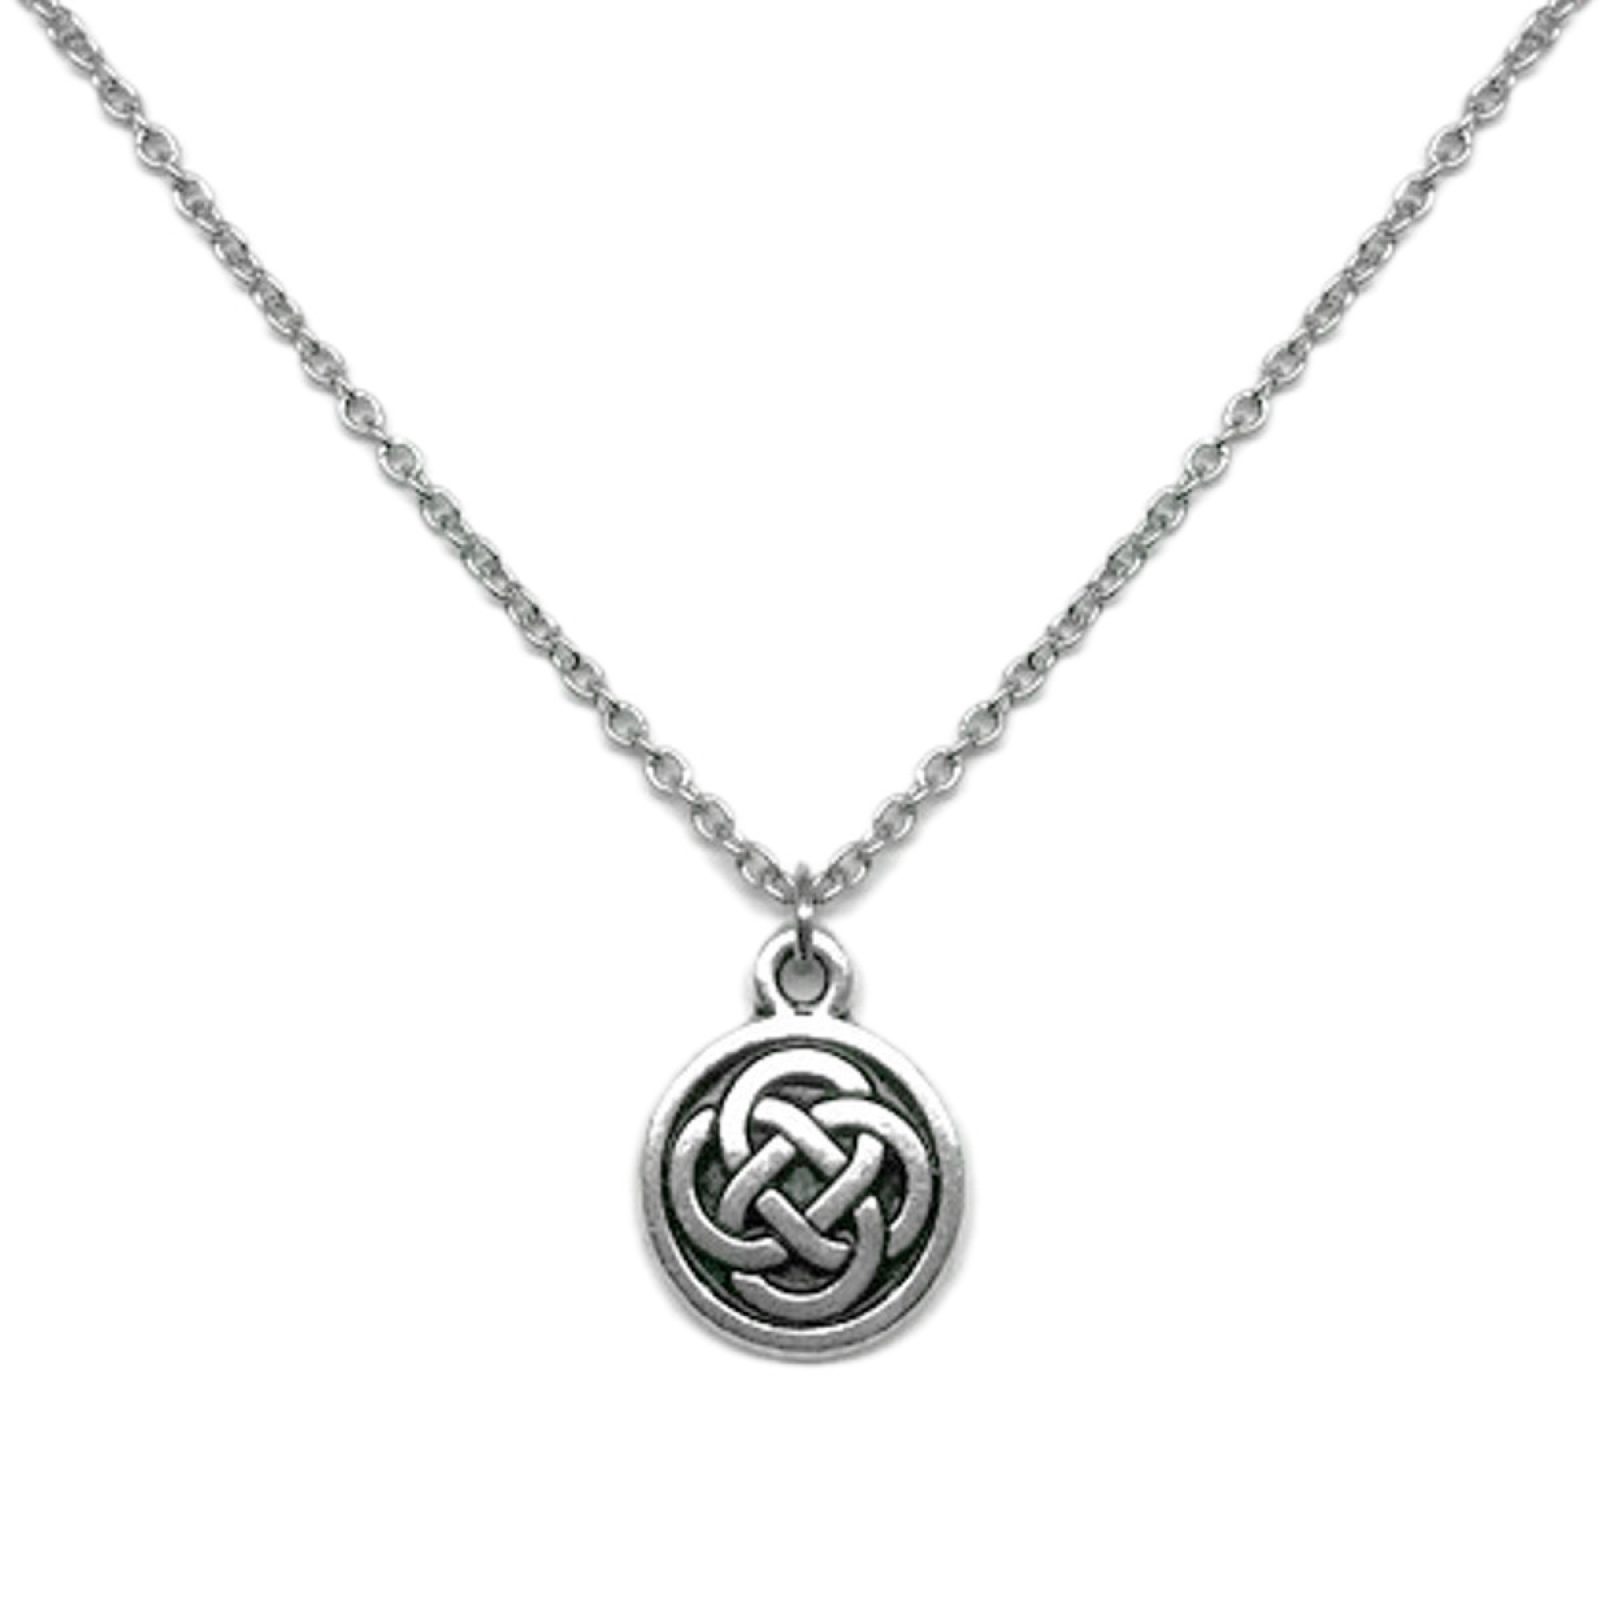 Loralyn Designs | Unique Stainless Steel Jewelry for Men and Women